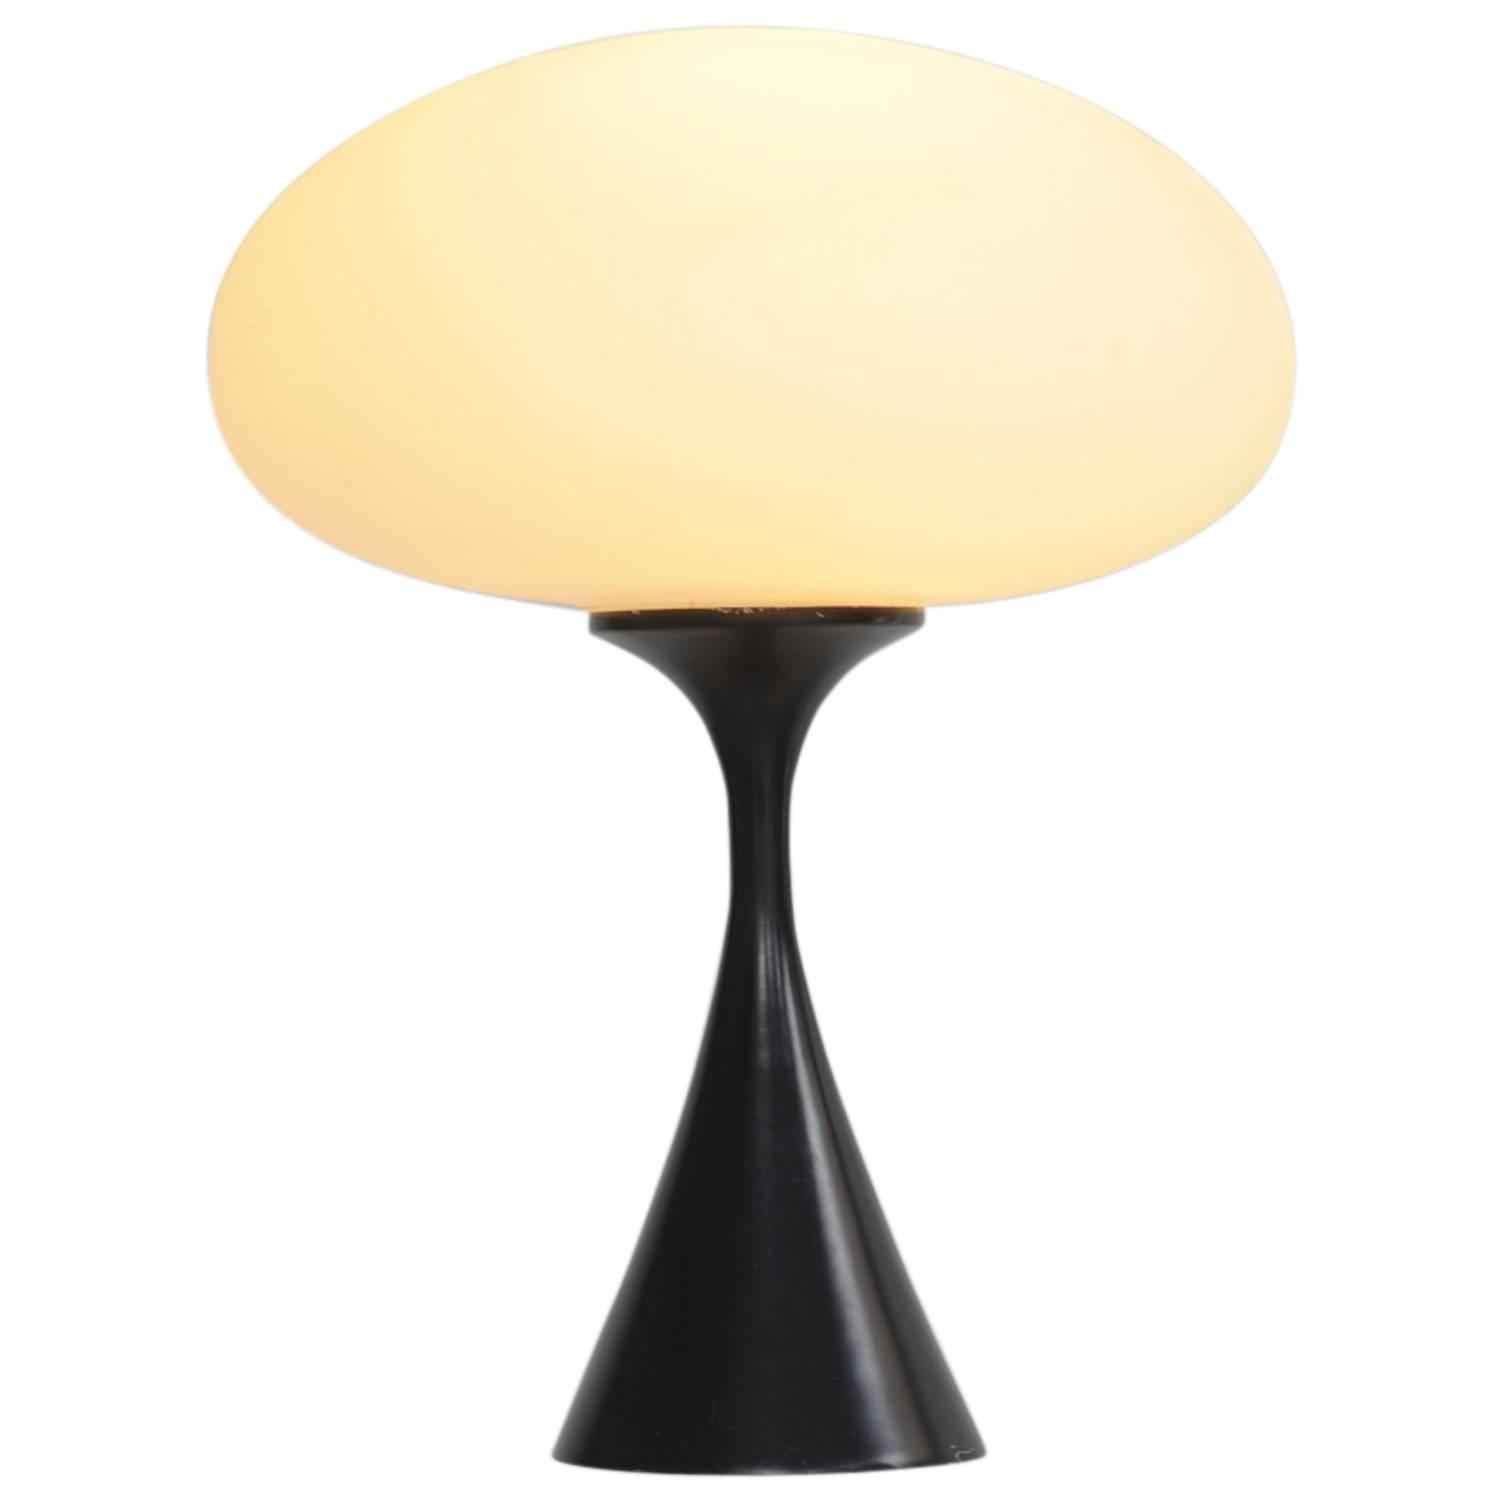 Laurel Mushroom Lamp At 1stdibs